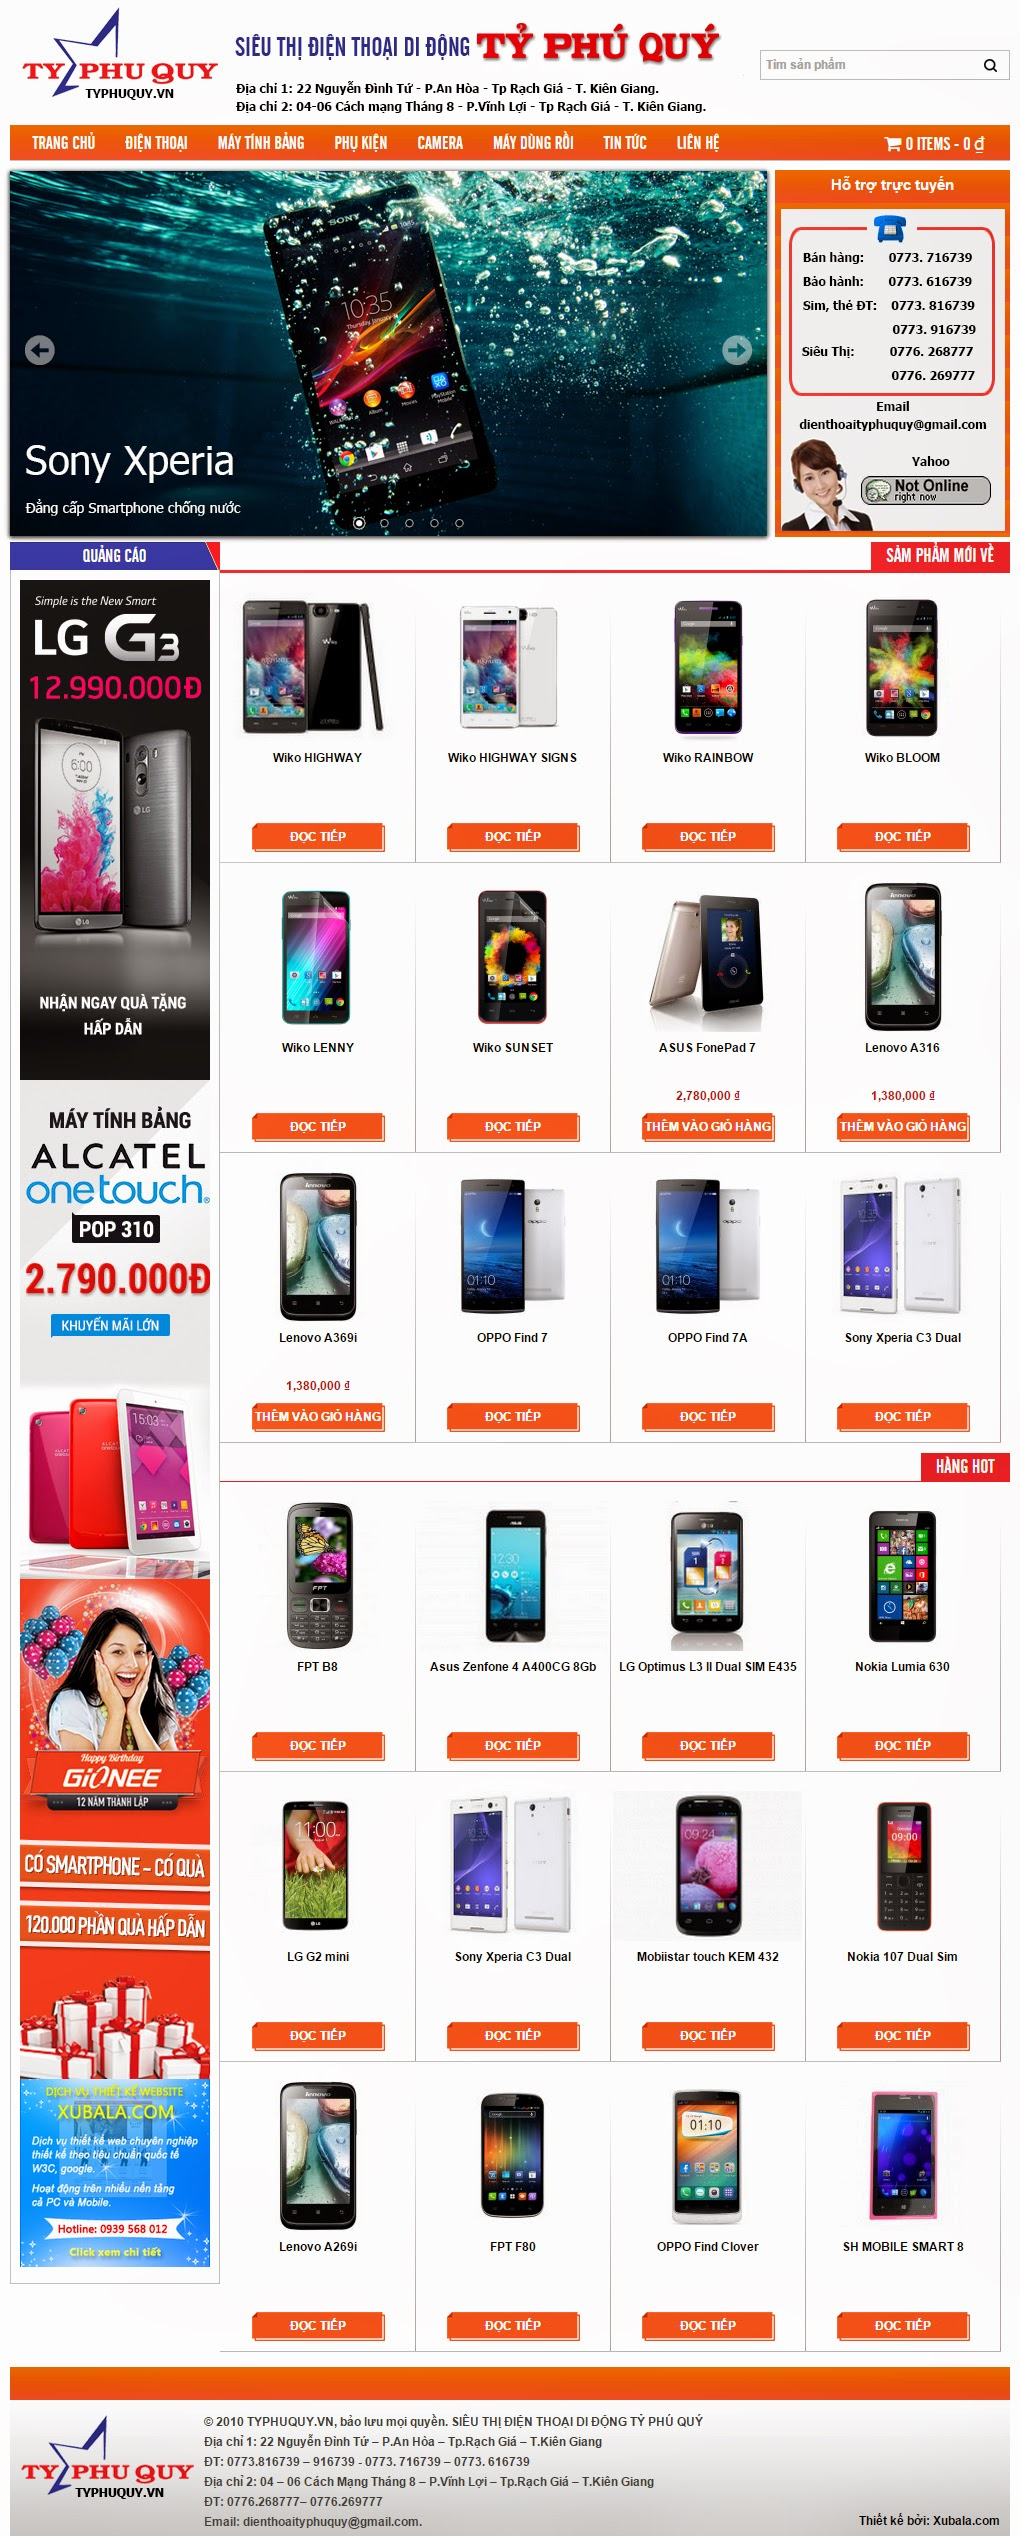 Ty Phu Quy Smartphone Store